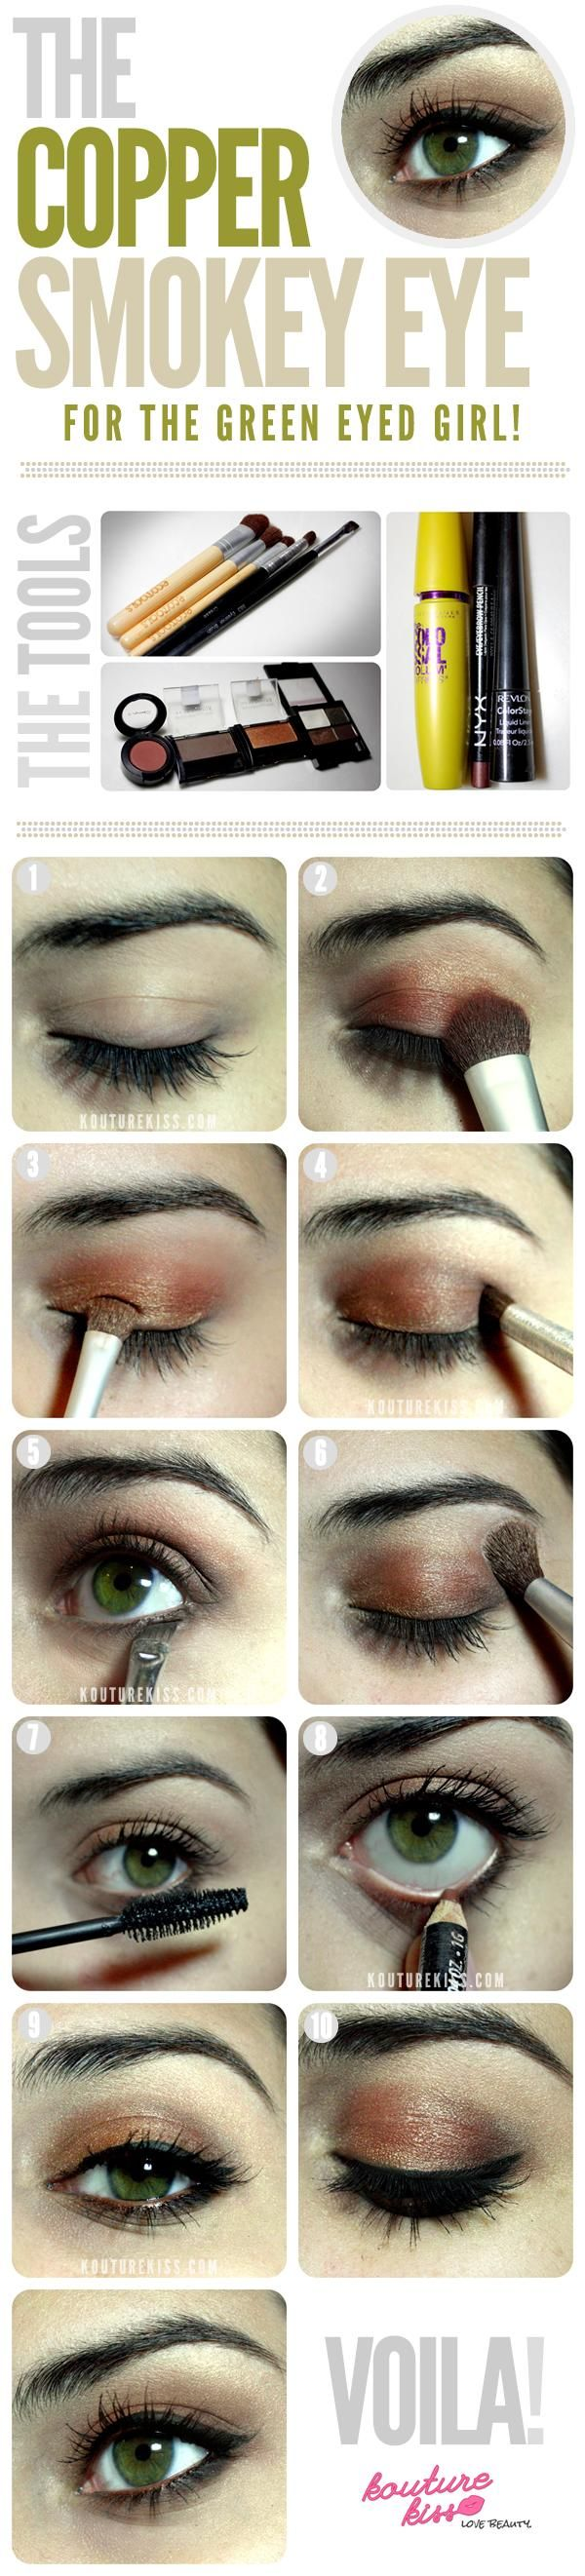 Makeup : DIY Copper Smokey Eye For The Green Eyed Girl Makeup tips and ideas